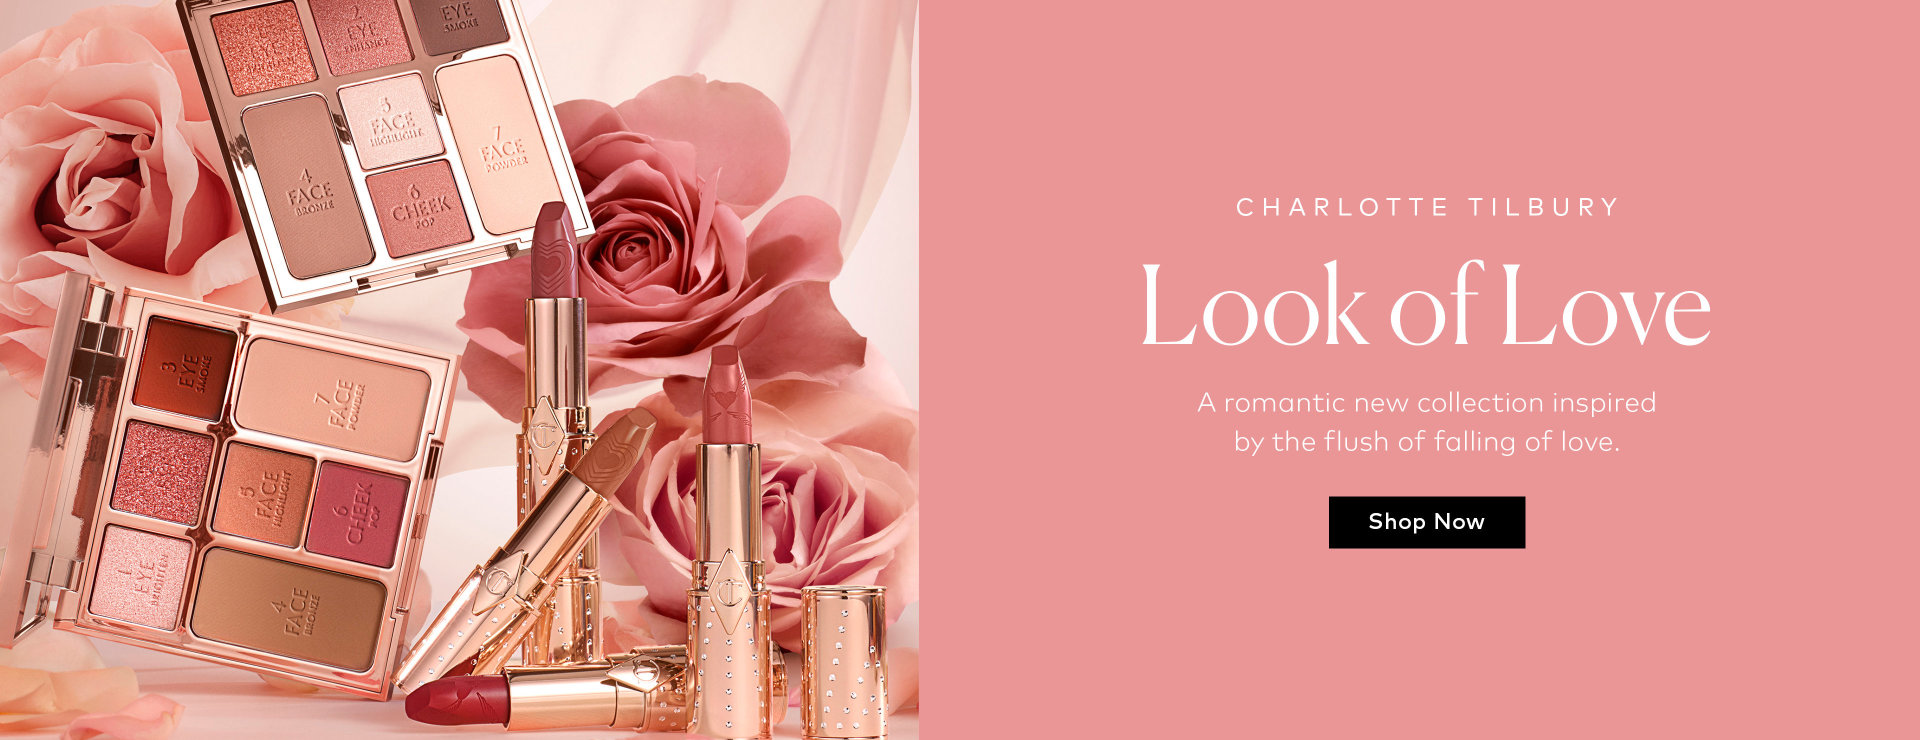 Shop Charlotte Tilbury Look of Love Collection on Beautylish.com